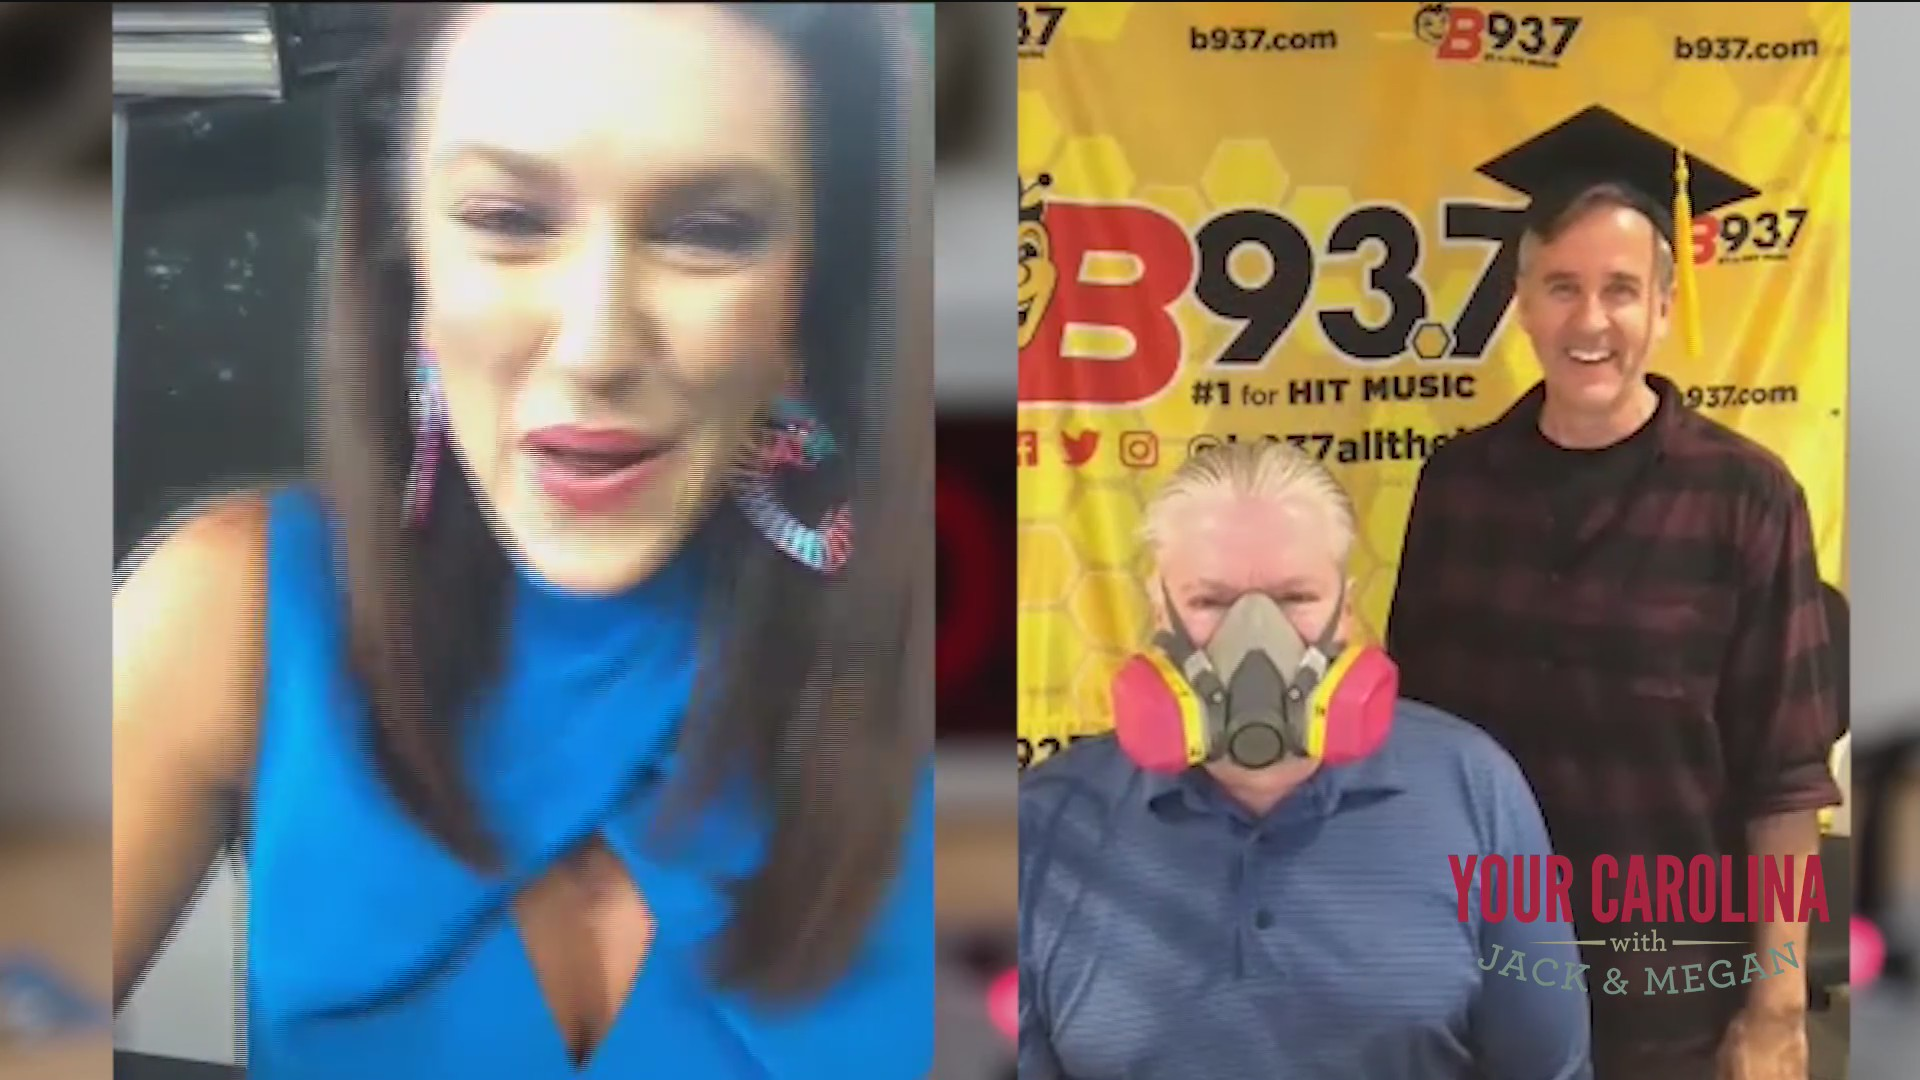 Megan Talks With Hawk and Tom from B93.7 To Find Out What They Are Up To